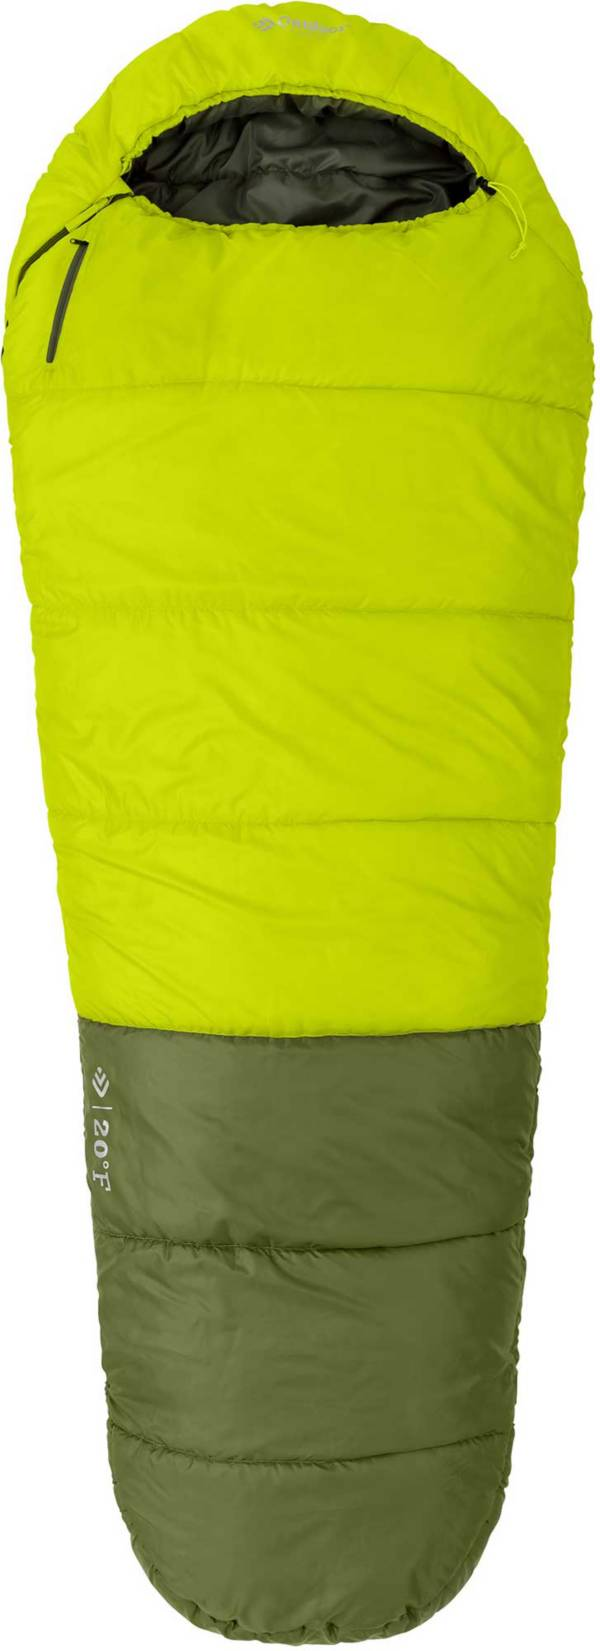 Outdoor Products 20°F Mummy Sleeping Bag product image